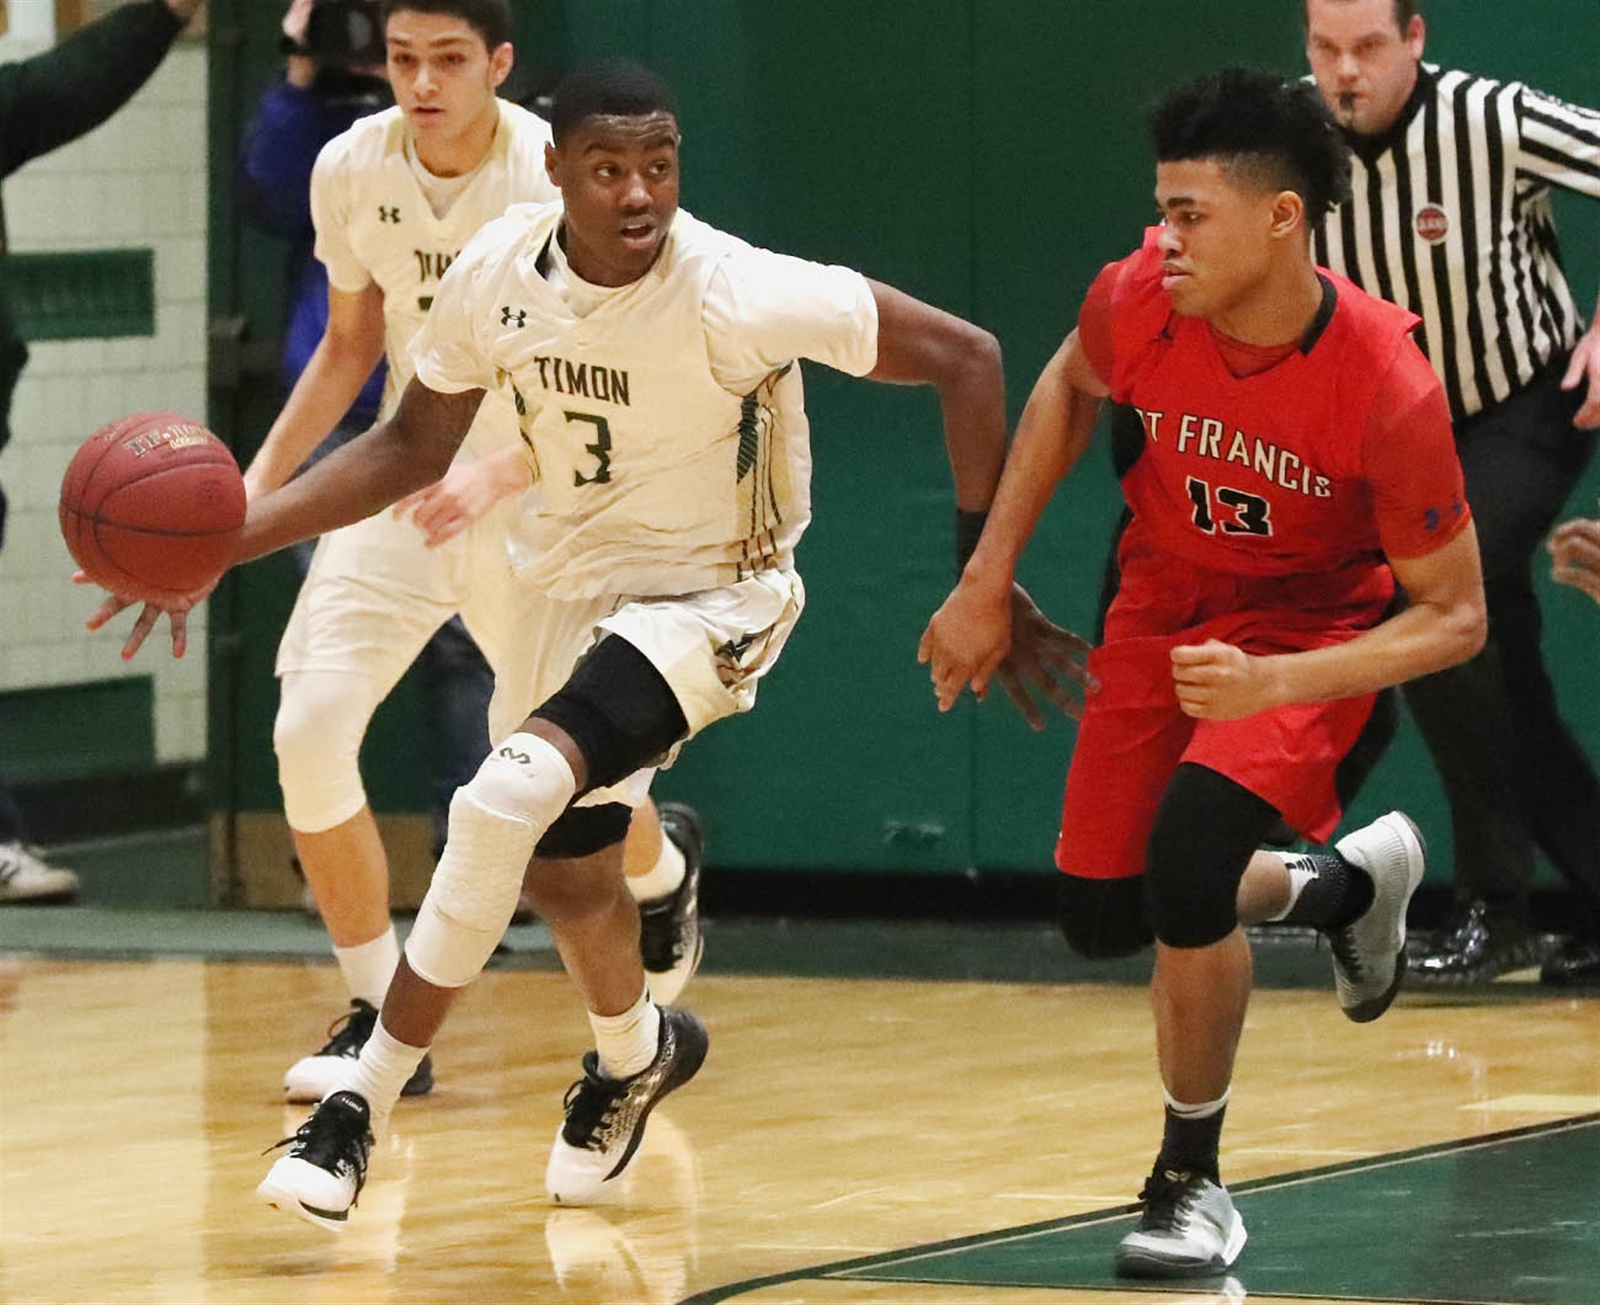 Bishop Timon-St. Jude's Davion Warren steals the ball away from St. Francis' Roburt Welch in the first half of Timon's 60-55 win over No. 1 boys large school St. Francis.